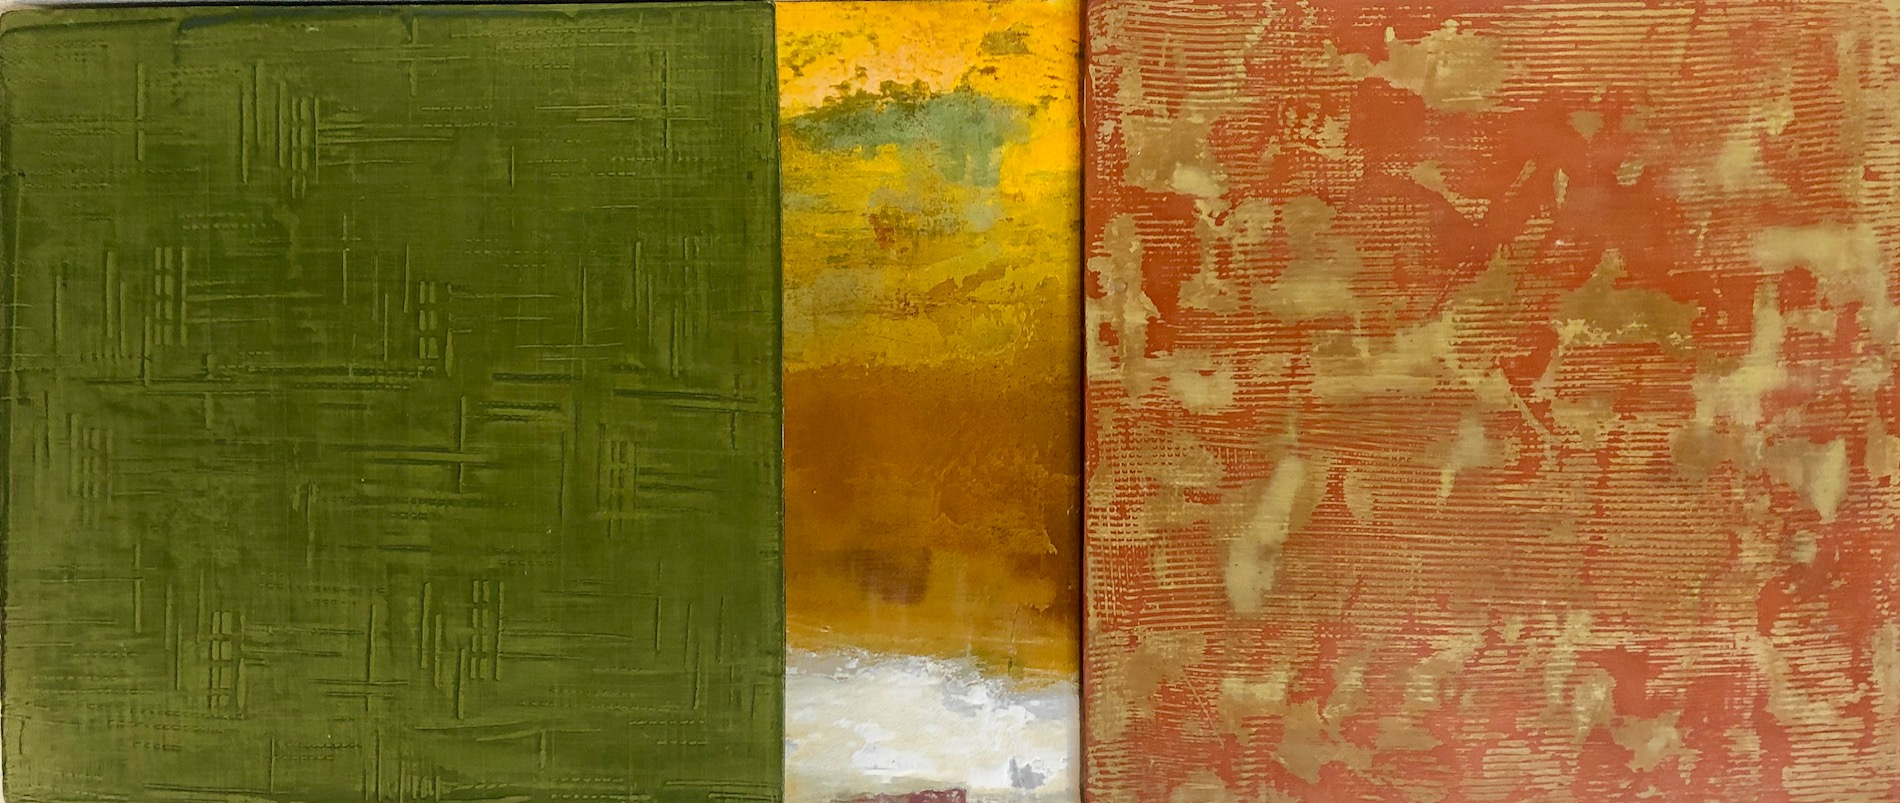 Rebecca Spivack   Triptych 4   2017  Integrated colored plaster construction  Signed, titled, dated, and branded by the artist,  verso   12 x 28 1/4 inches